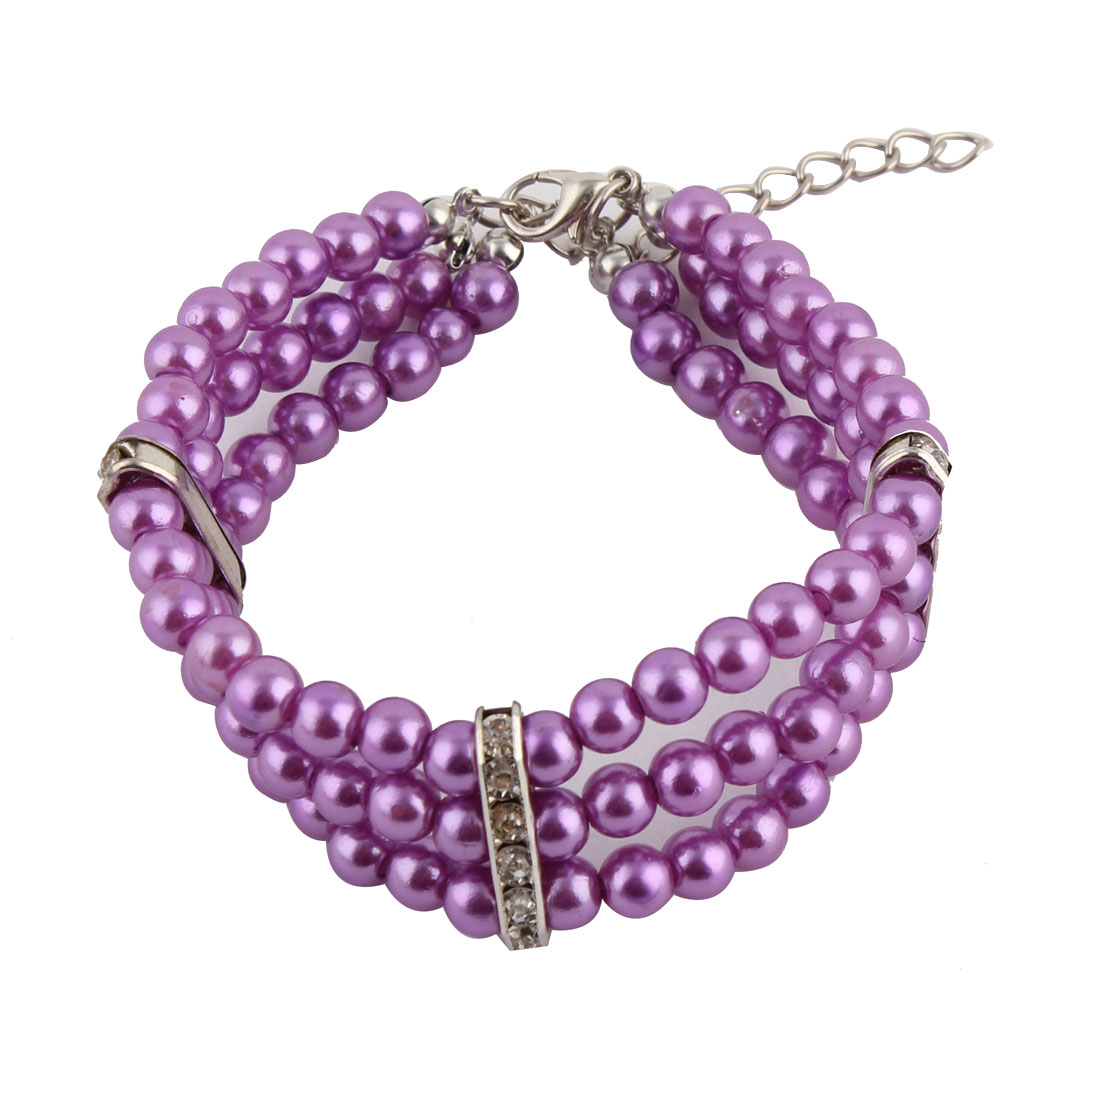 Pet Dog Plastic Three Rows Round Beads Linked Collar Necklace Purple